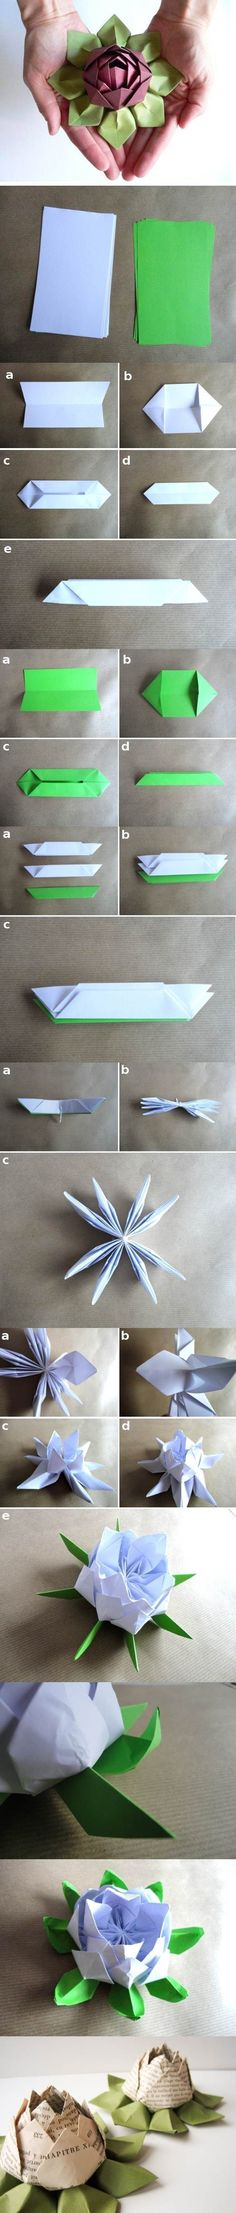 DIY Origami Lotus Flower | iCreativeIdeas.com Like Us on Facebook ==> www.facebook.com/...